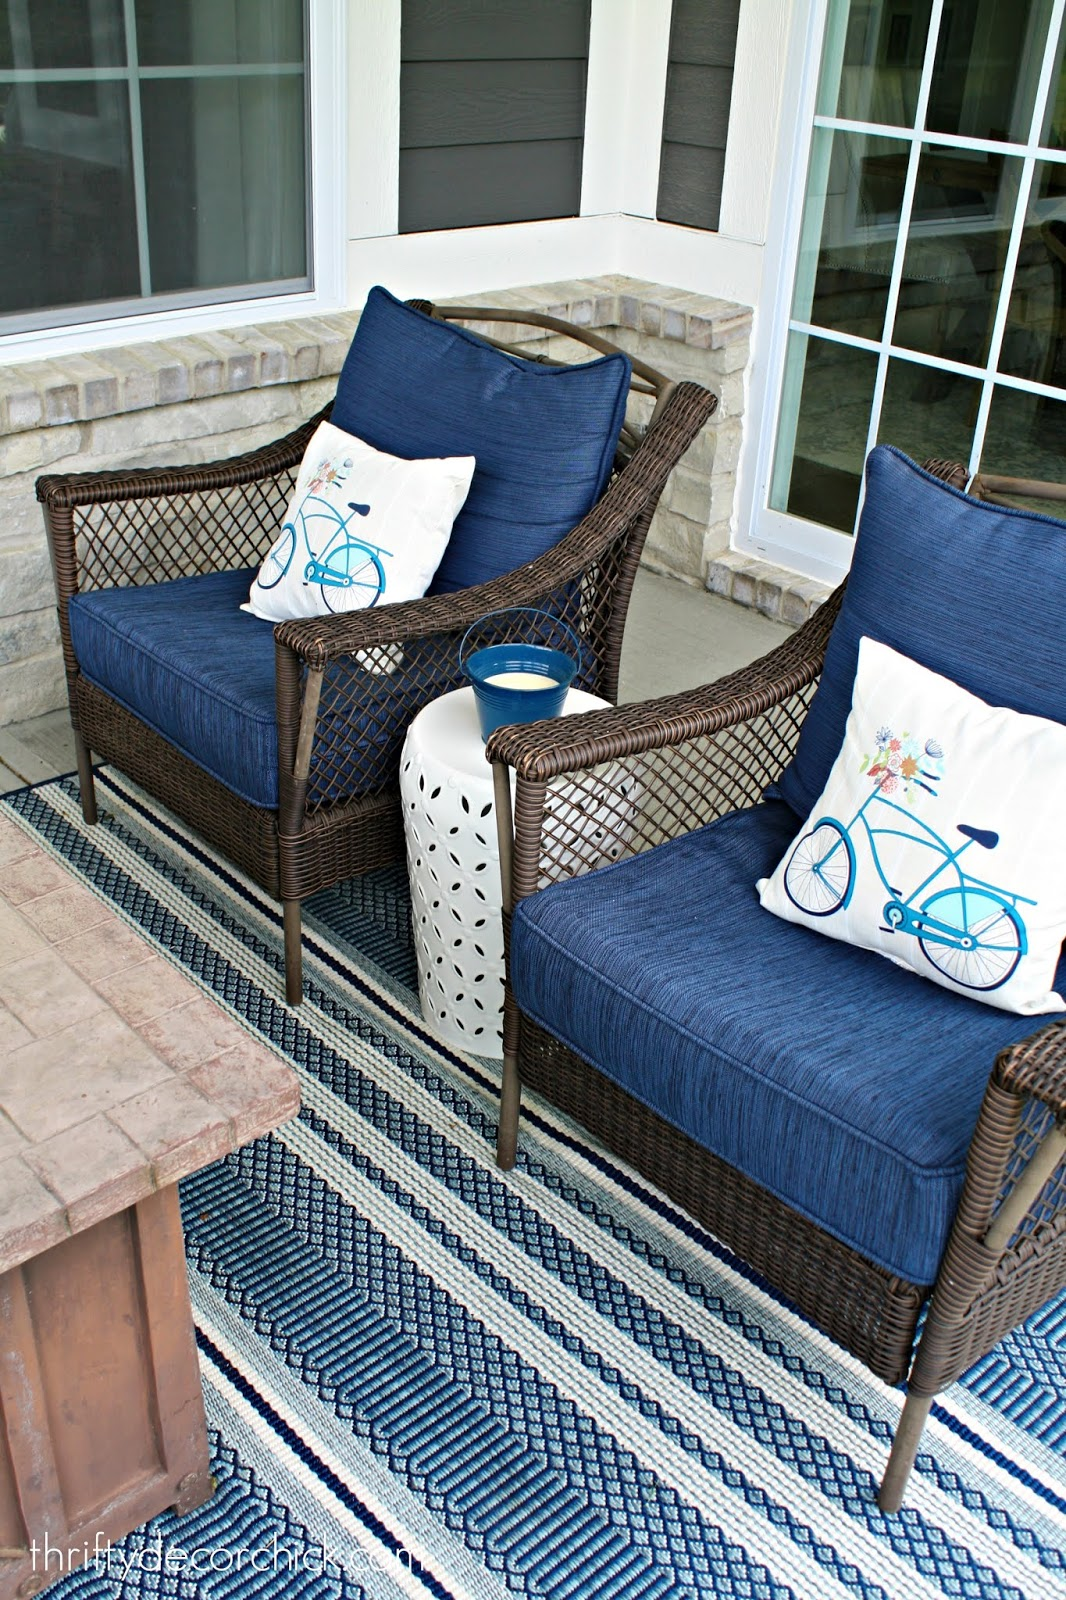 Blue, white and aqua outdoor decor on covered patio